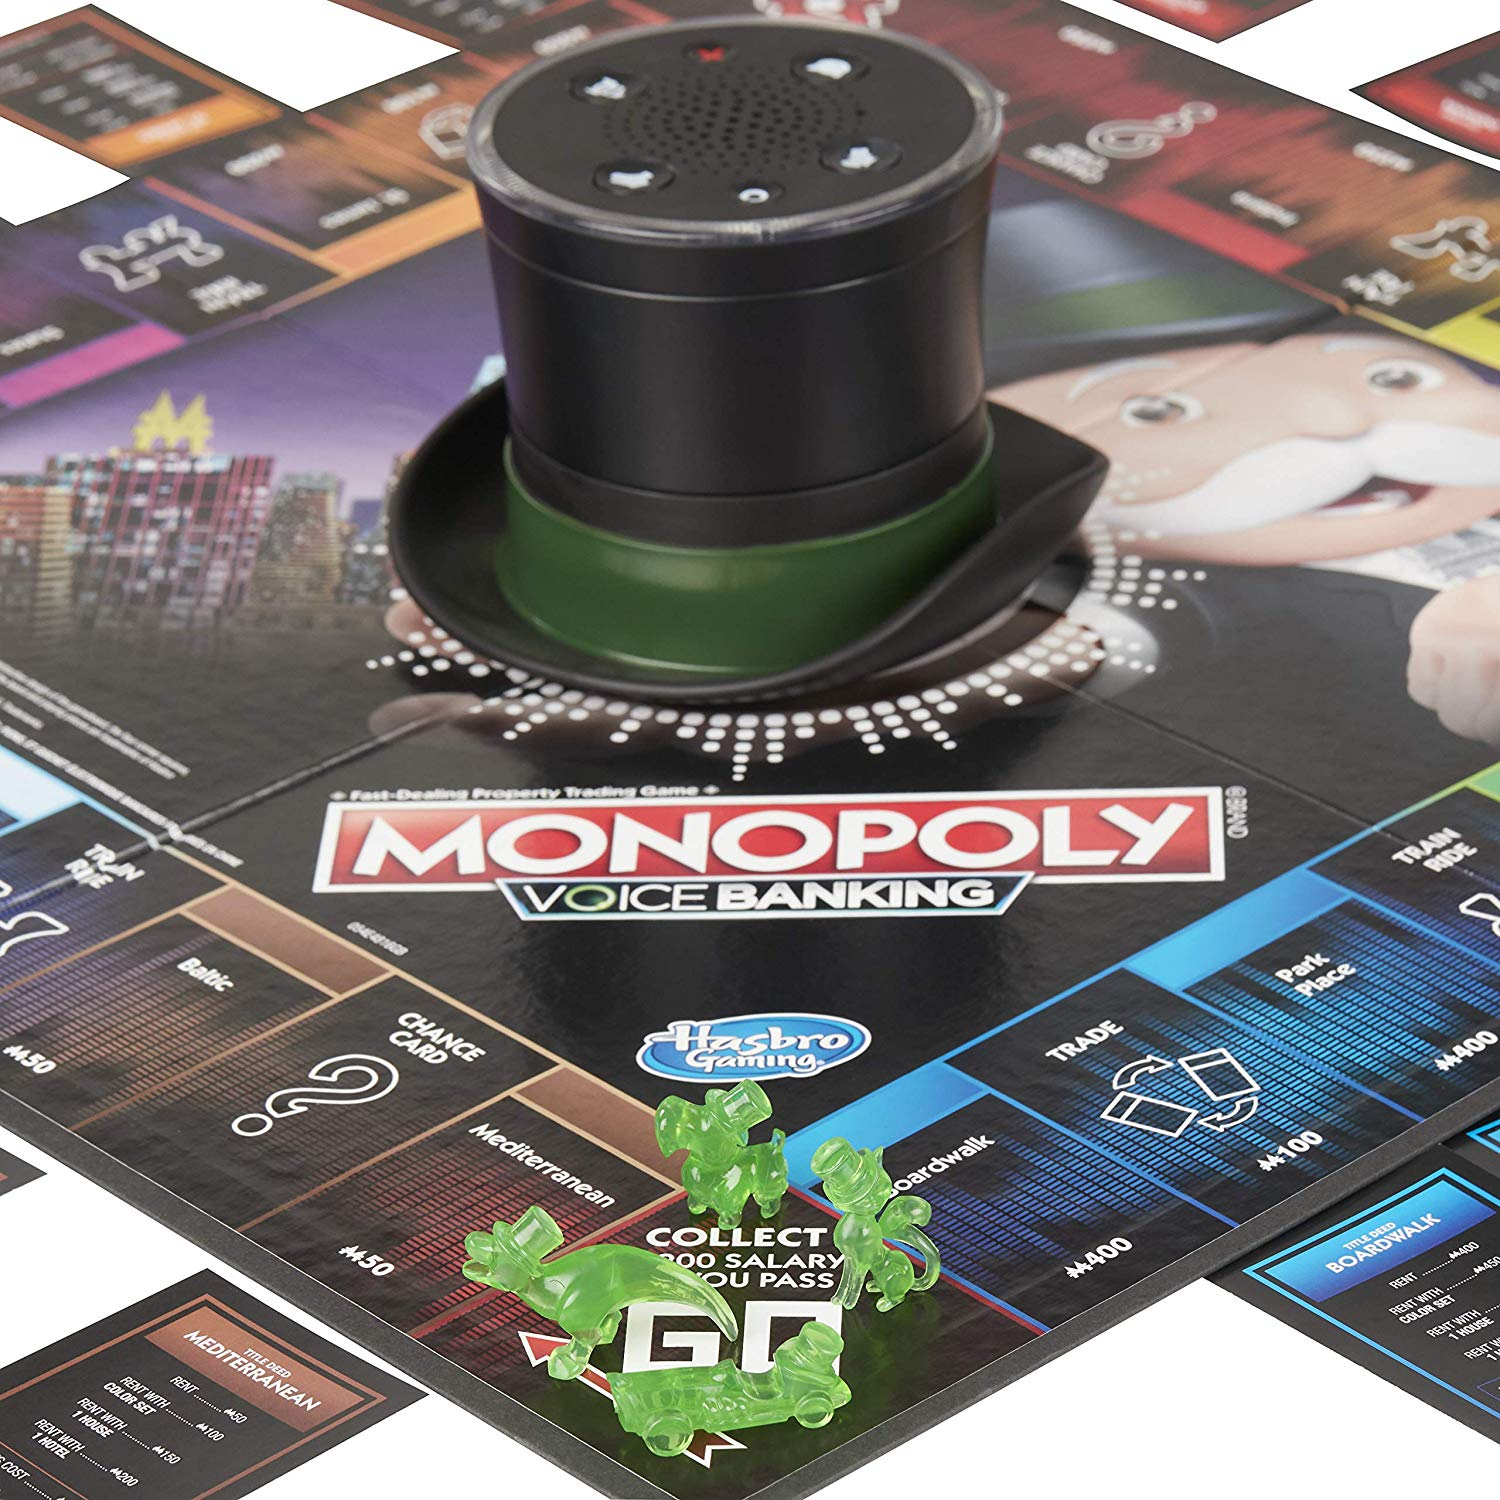 Mr Monopoly speaks up in game's new version